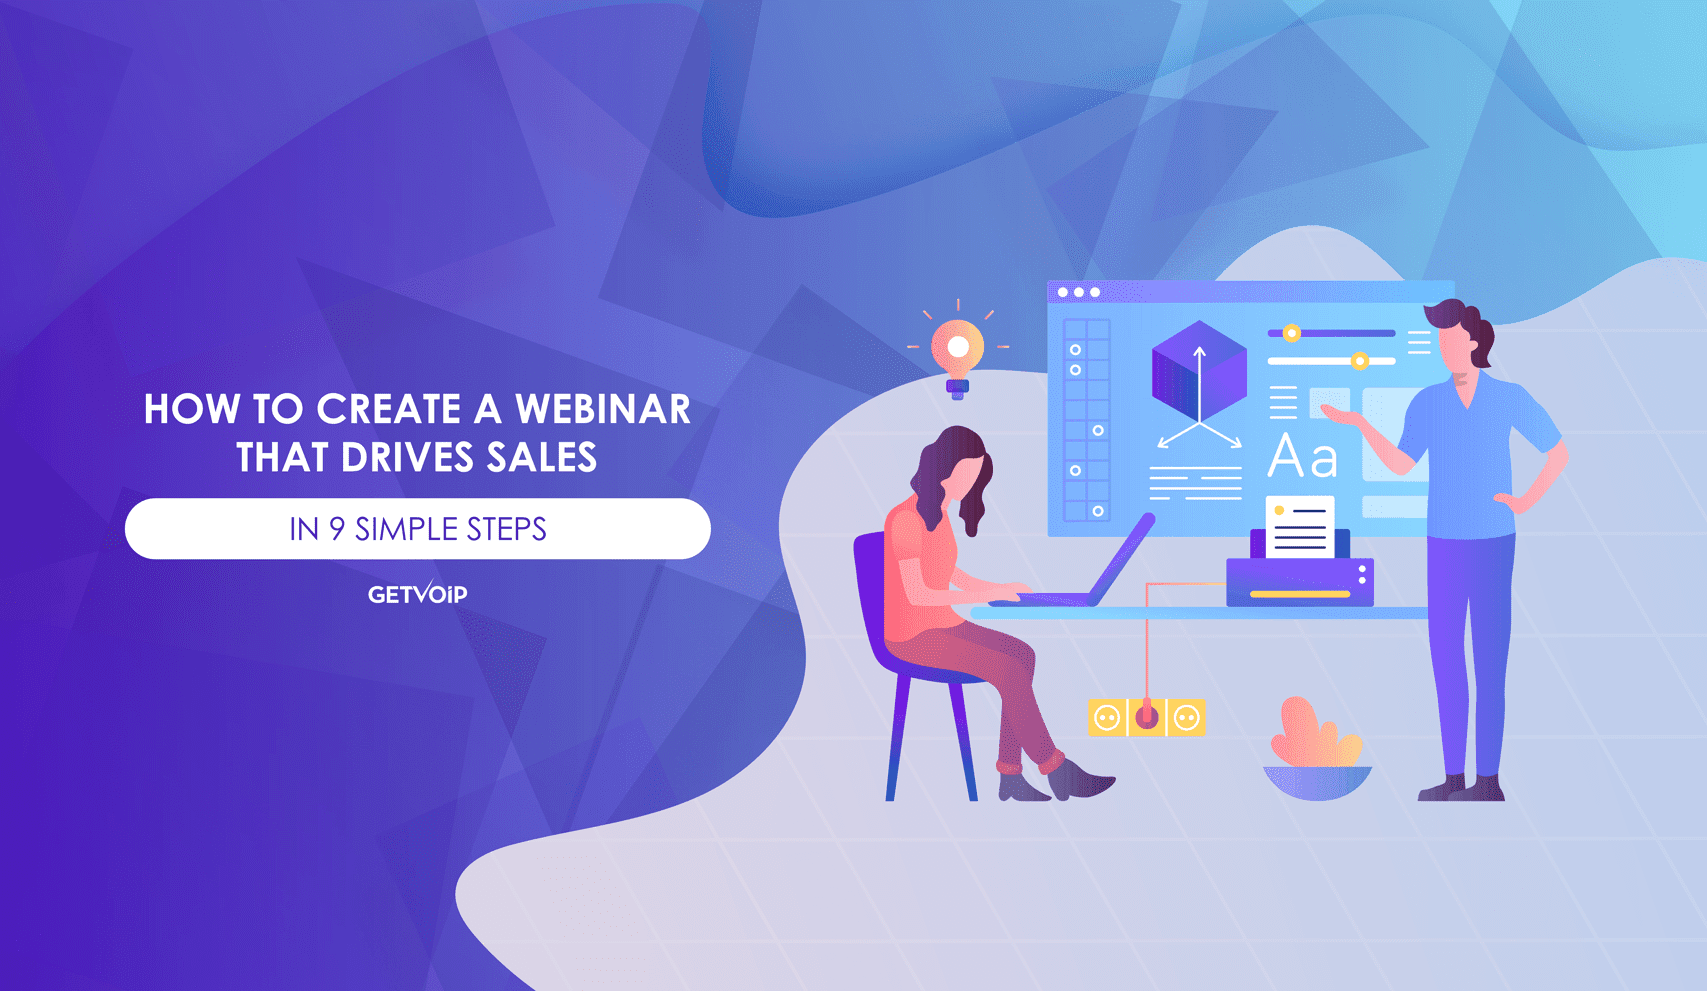 How to Create a Webinar That Drives Sales in 9 Simple Steps